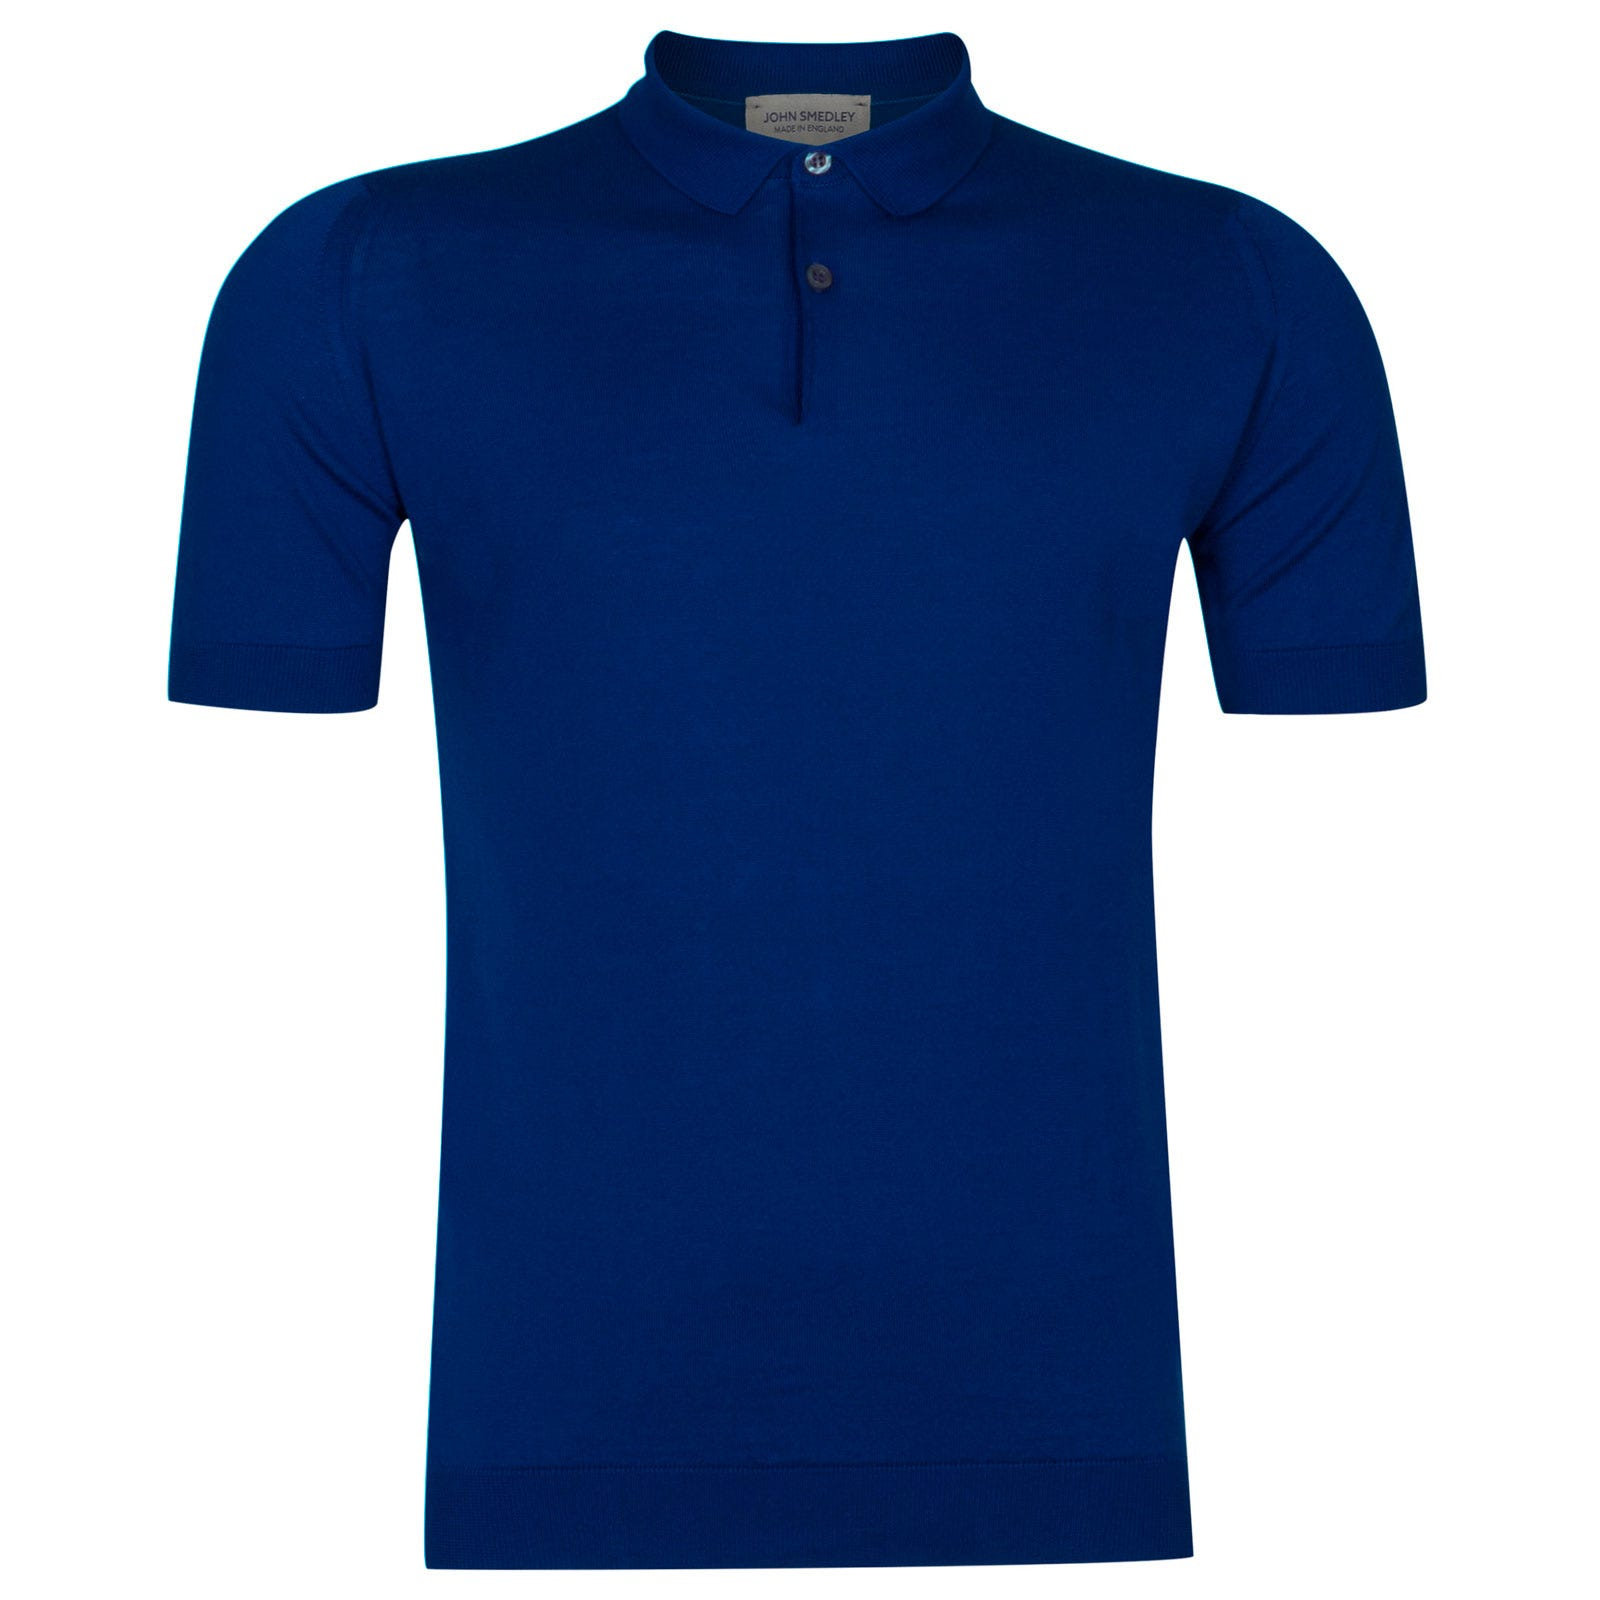 John Smedley rhodes Sea Island Cotton Shirt in Coniston Blue-M